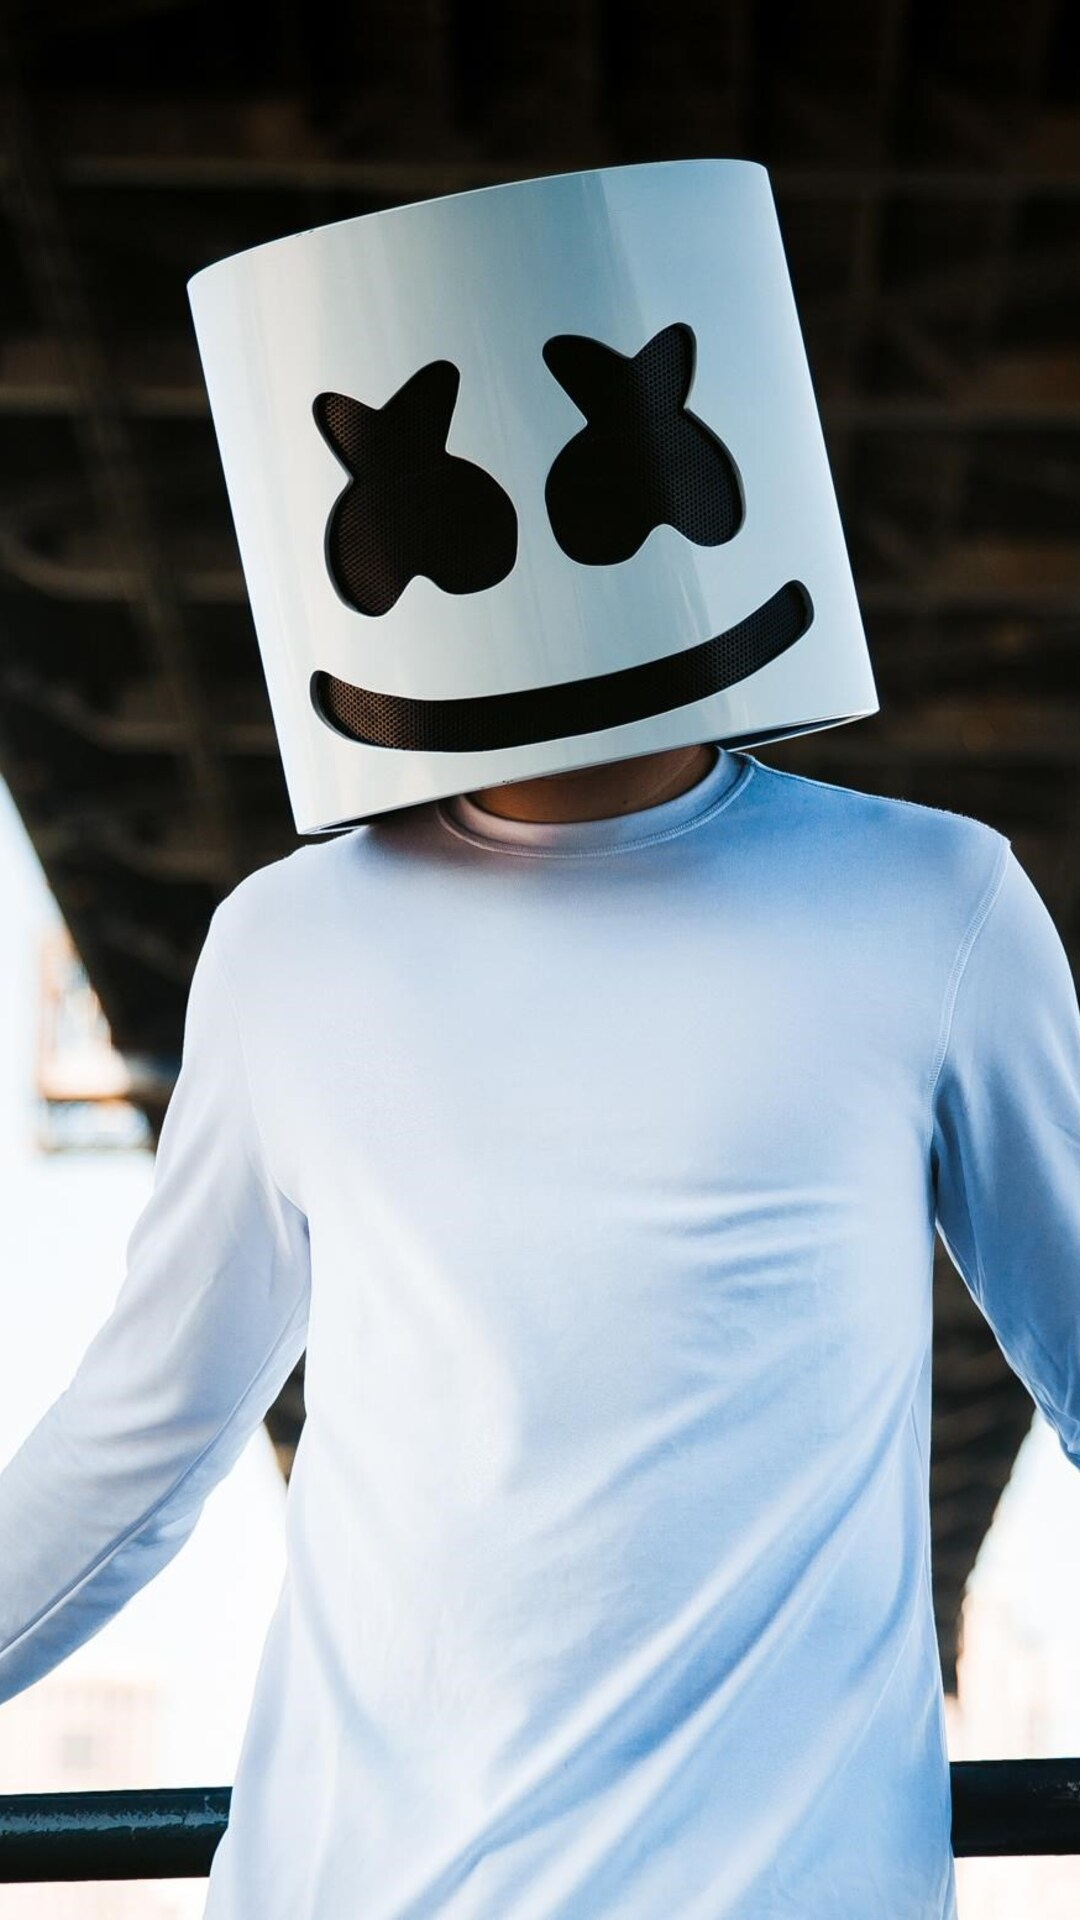 Cute Marshmallow Wallpaper Hd 1080x1920 Marshmello Dj Mask Iphone 7 6s 6 Plus Pixel Xl